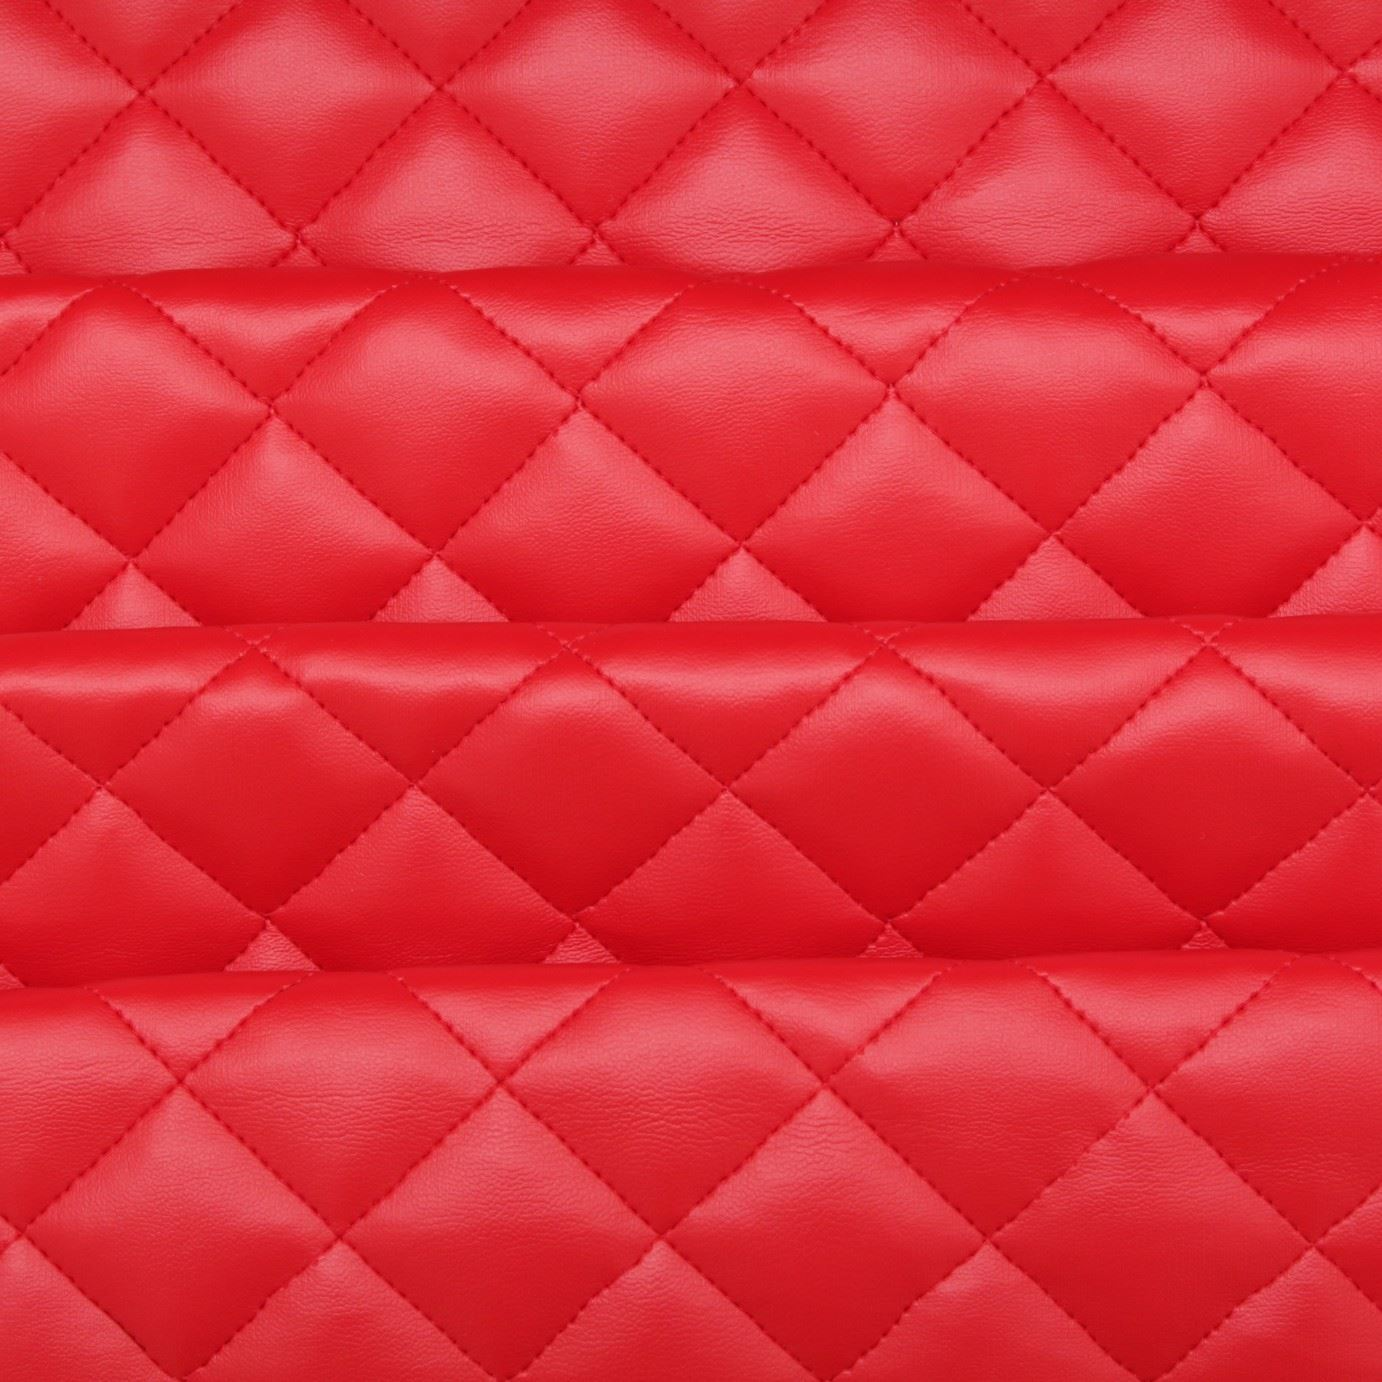 Quilted leather diamond padded cushion faux leather for Red leather fabric